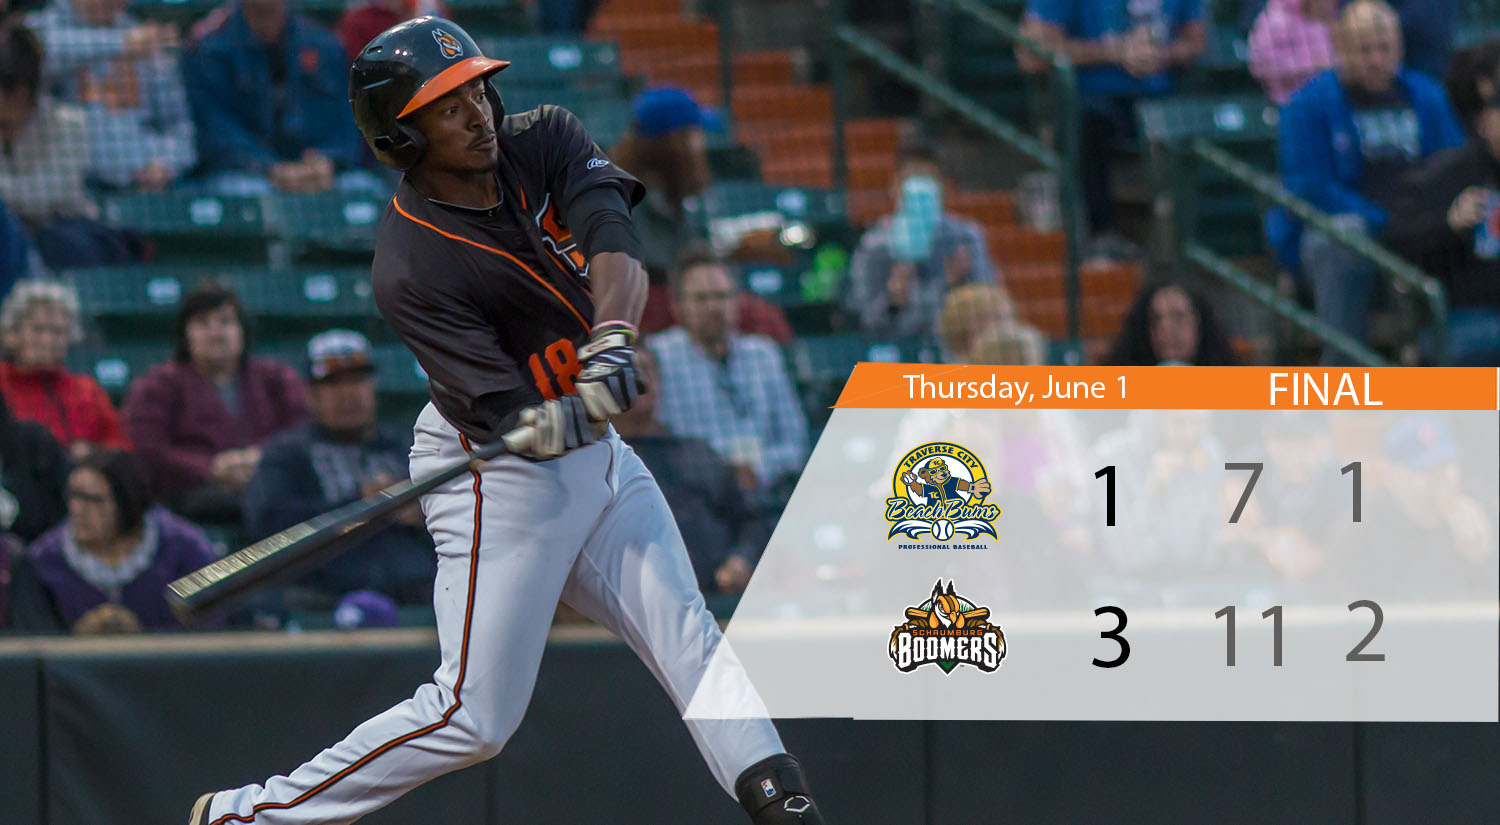 Boomers Edge Traverse City to Win Series